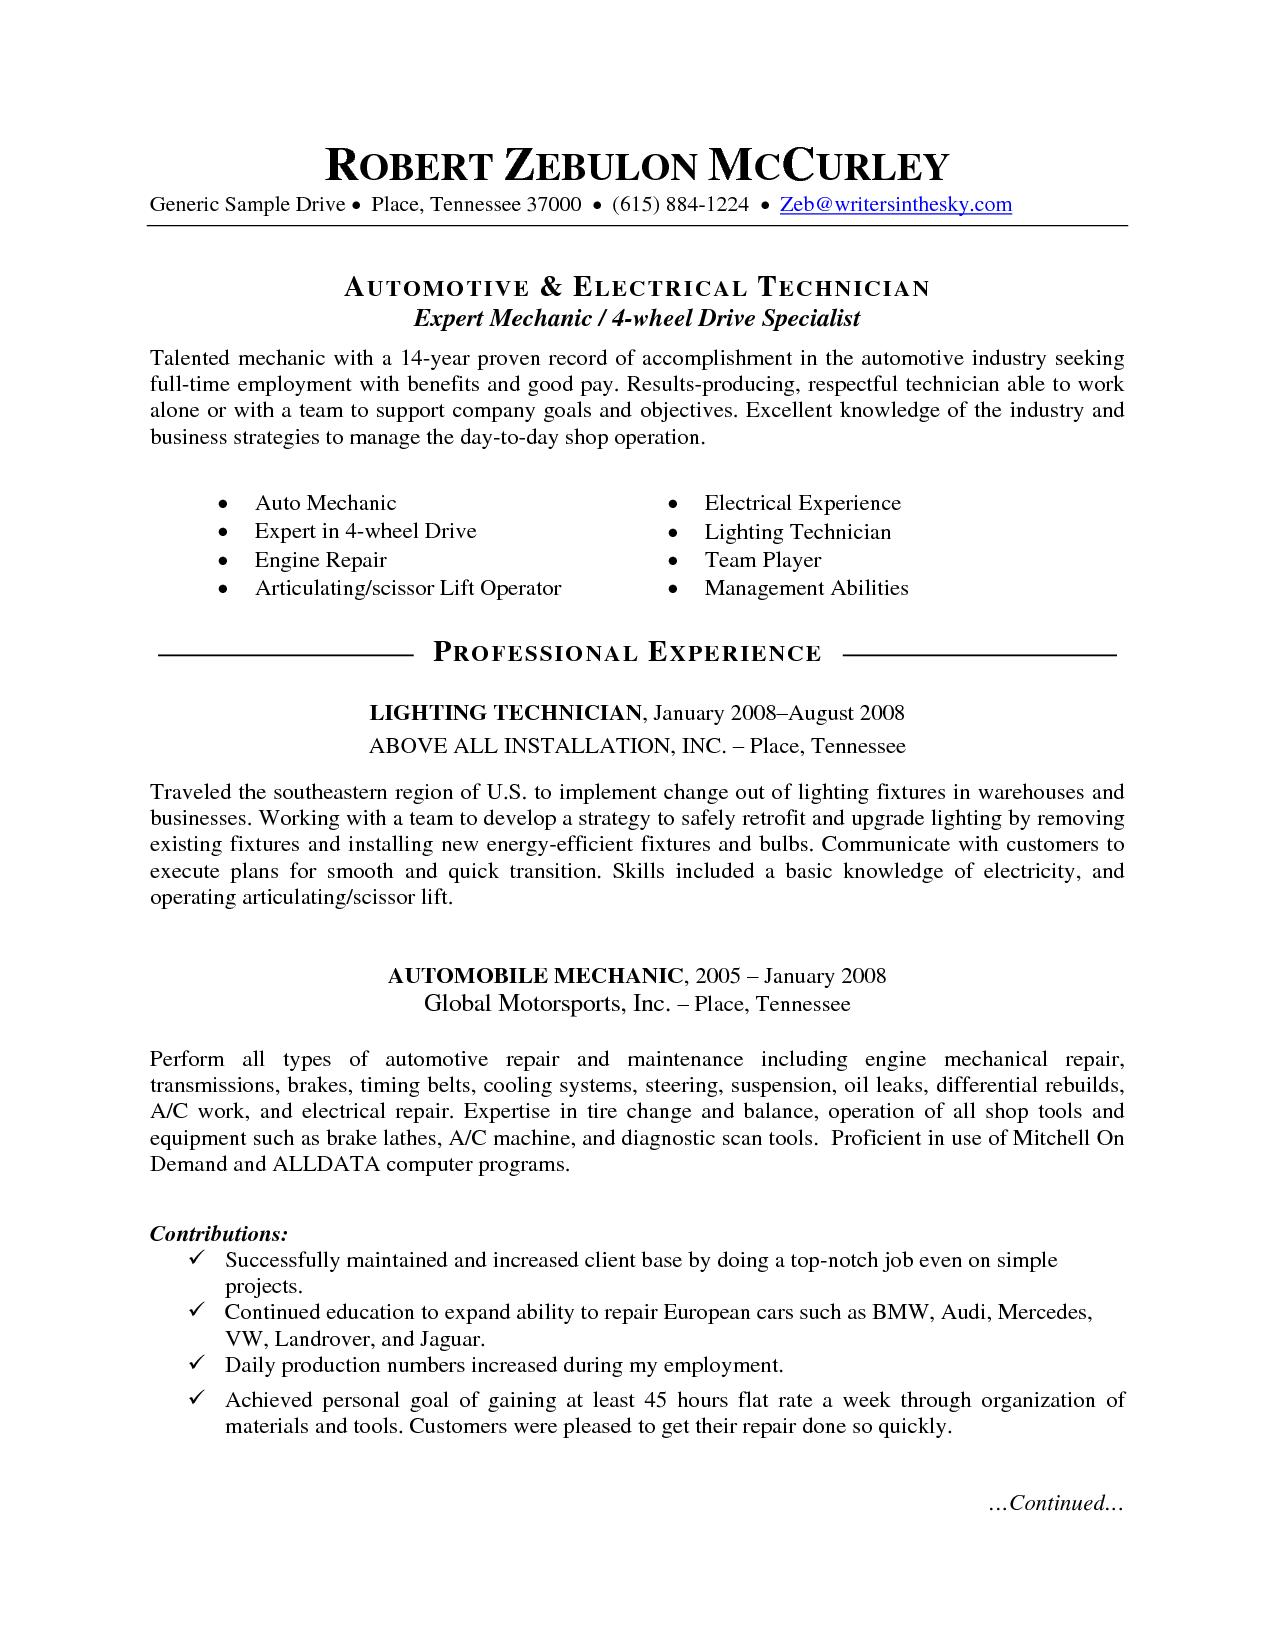 72 Inspirational Auto Mechanic Resume Objective Examples with Gallery